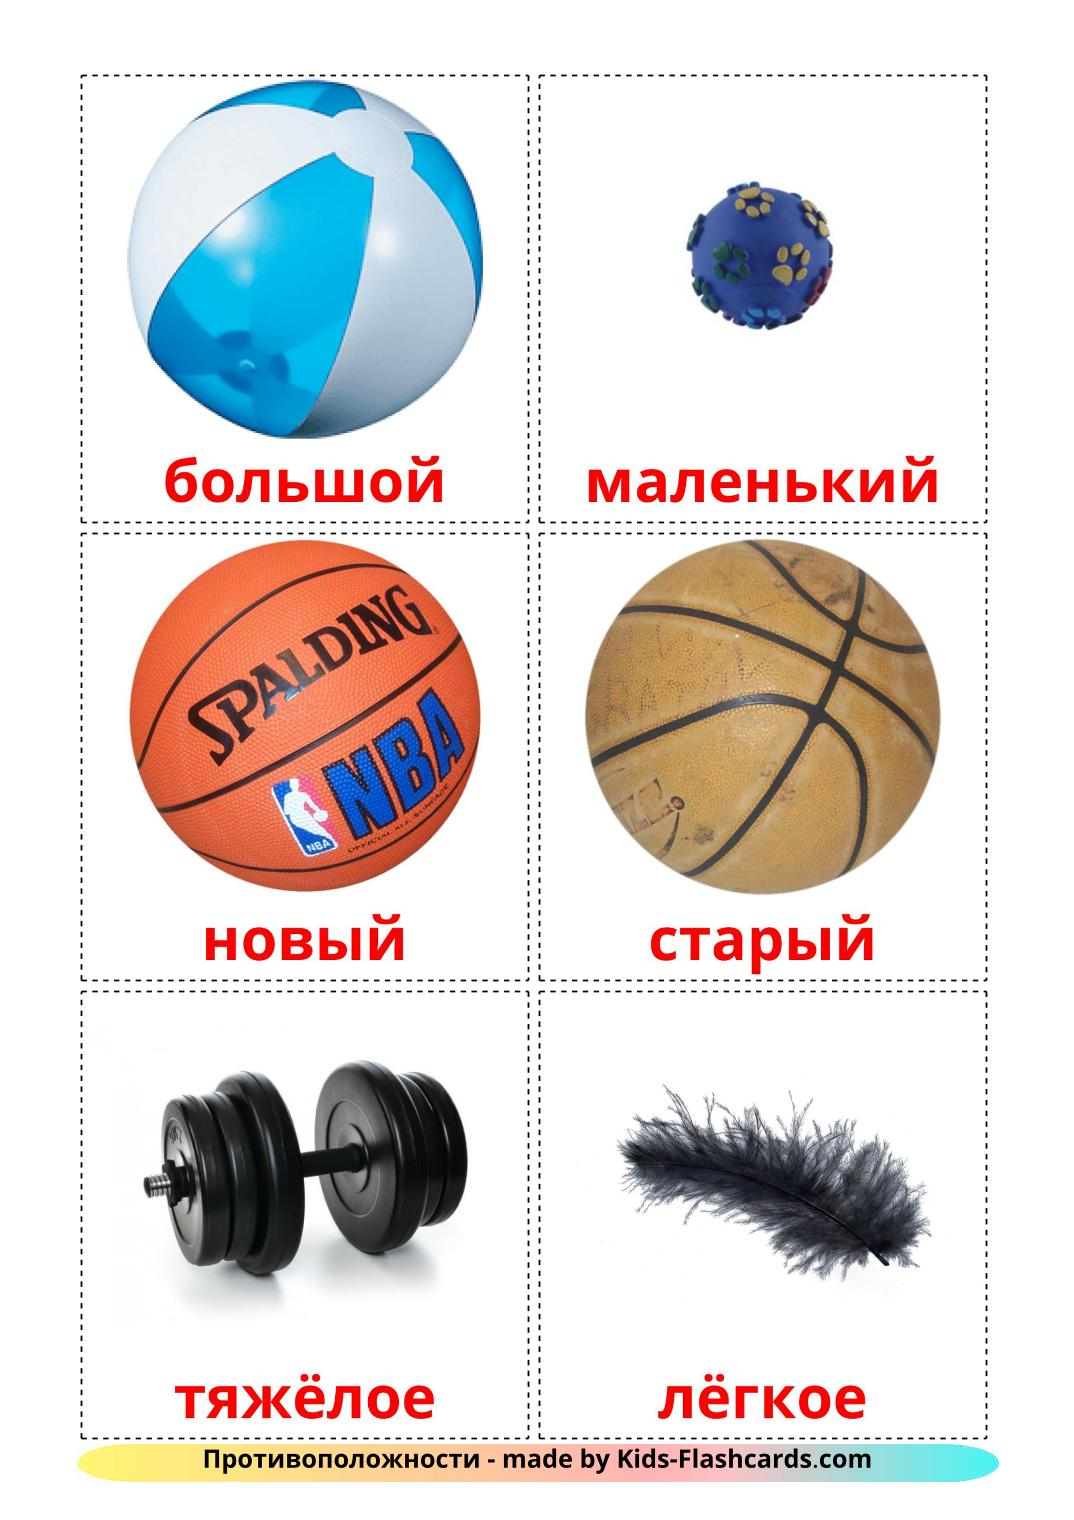 Opposites - 74 Free Printable russian Flashcards